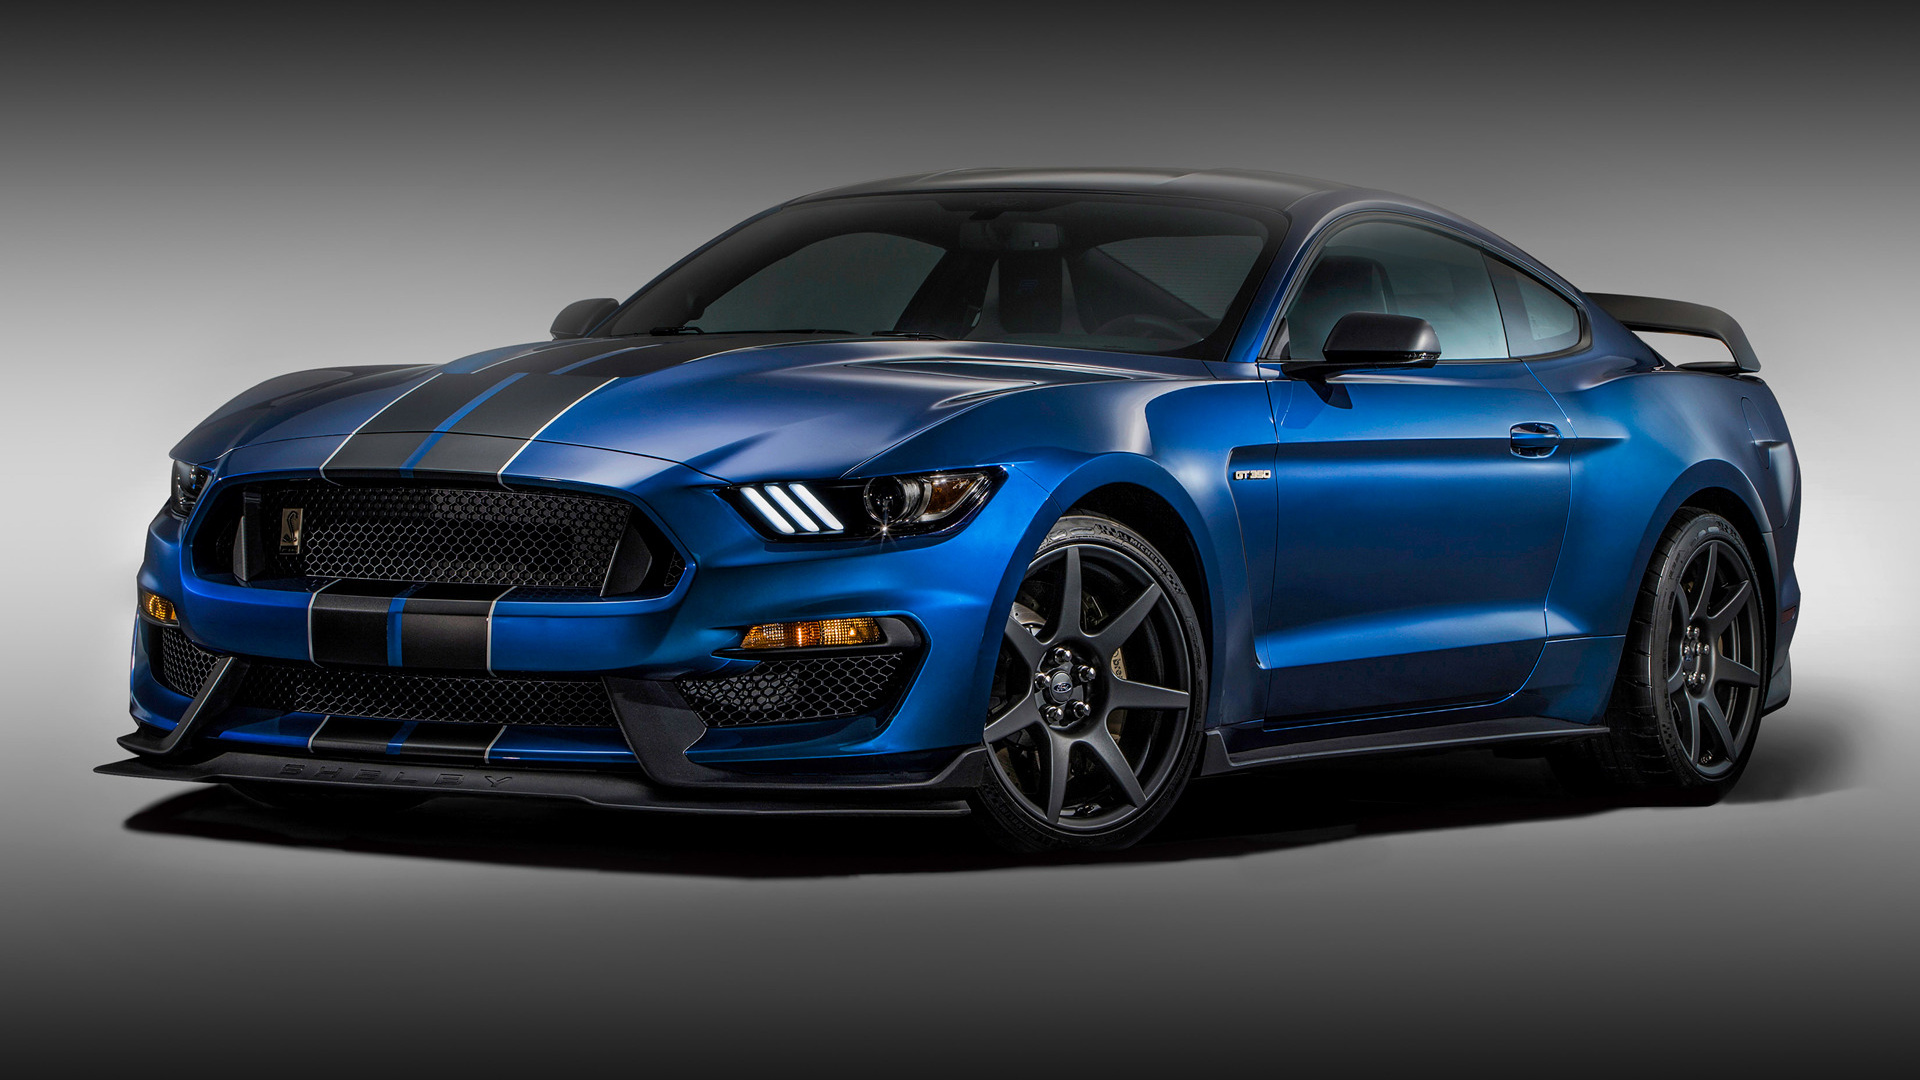 Ford Mustang Gt Wallpaper Hd as well Saleen Mustang Black Label in addition Ford Mustang Gt Wallpaper Hd also Ford Fairlane Convertible Interior additionally Jade Roper Does Retro Playboy Classic Photo Shoot In Mustang Convertible Photo Gallery. on 2016 ford mustang gt convertible